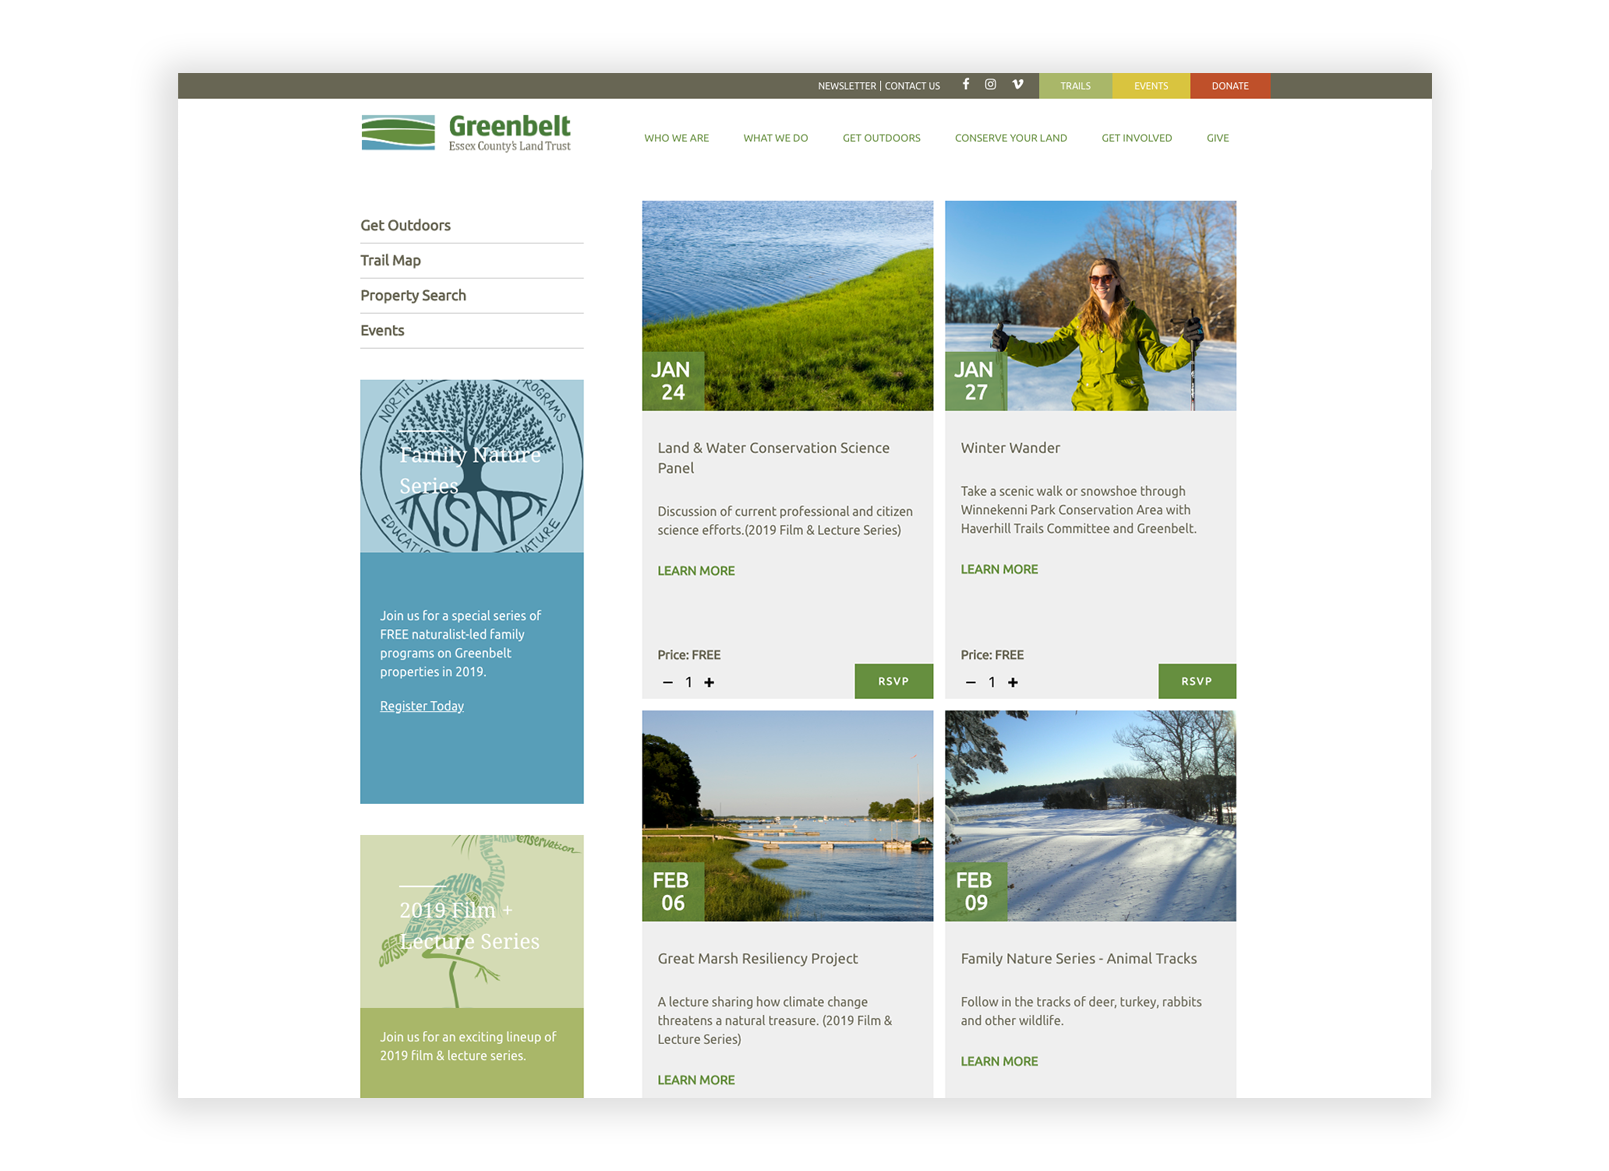 greenbelt-online-events-morweb.png